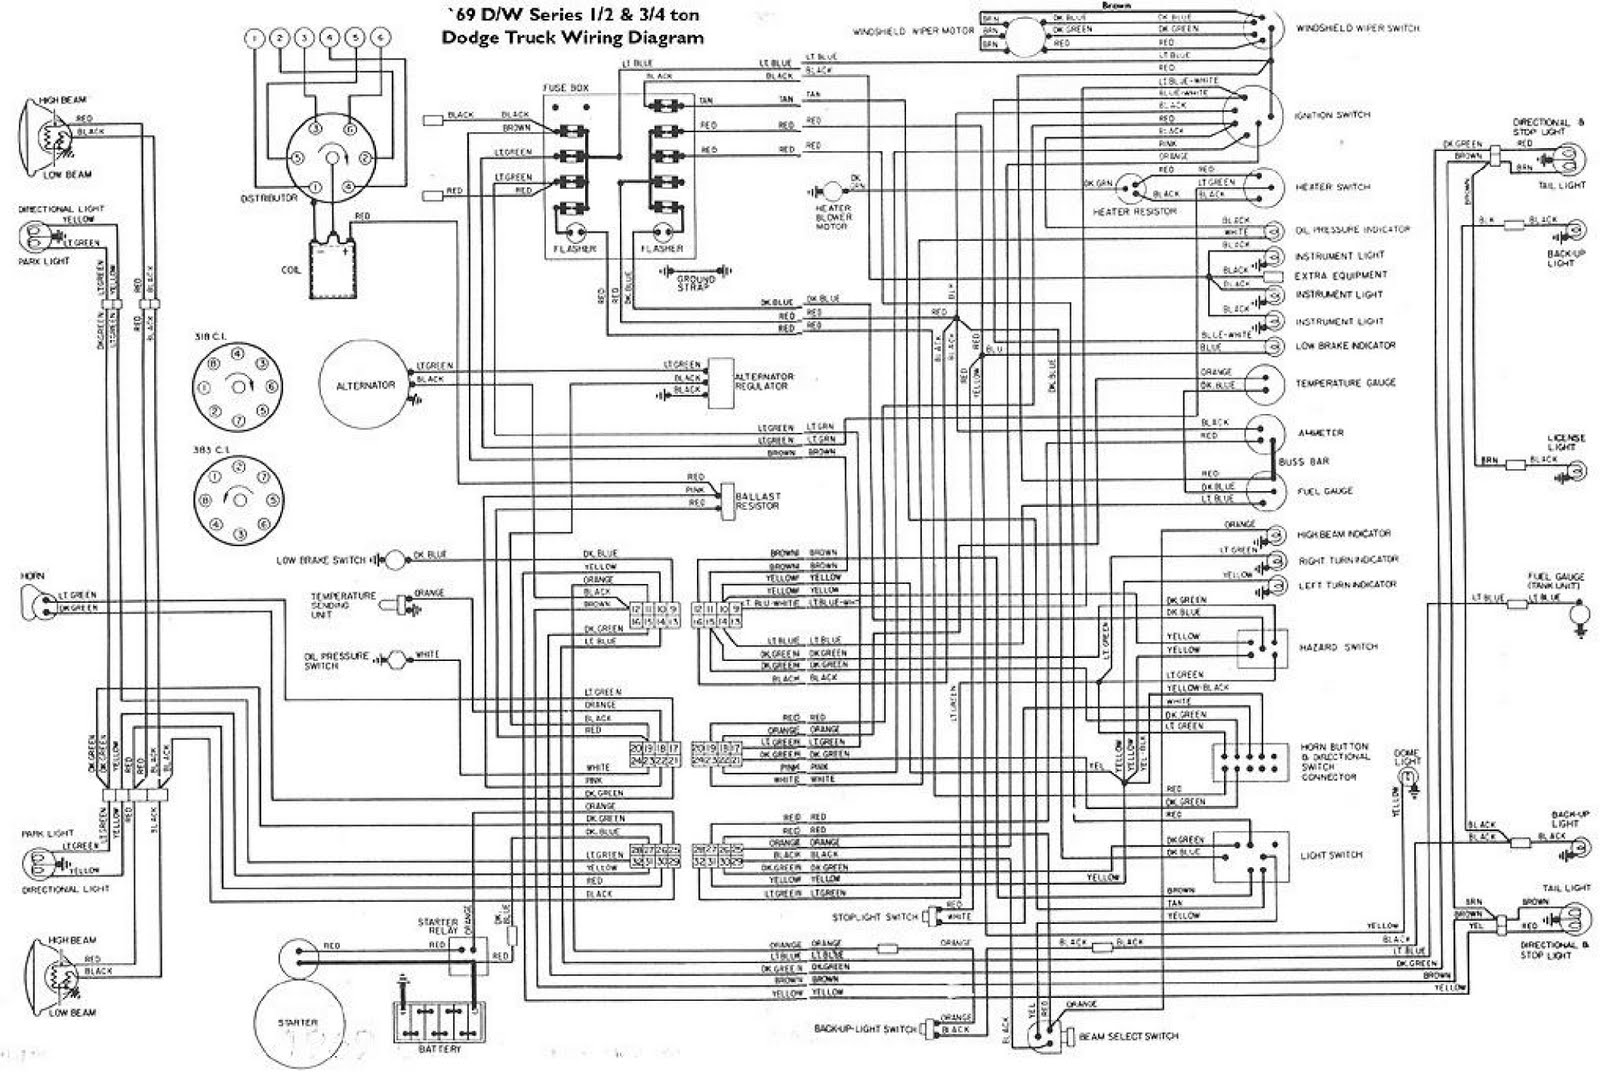 1969's D/W Series Dodge Truck Wiring Diagram | Schematic ...